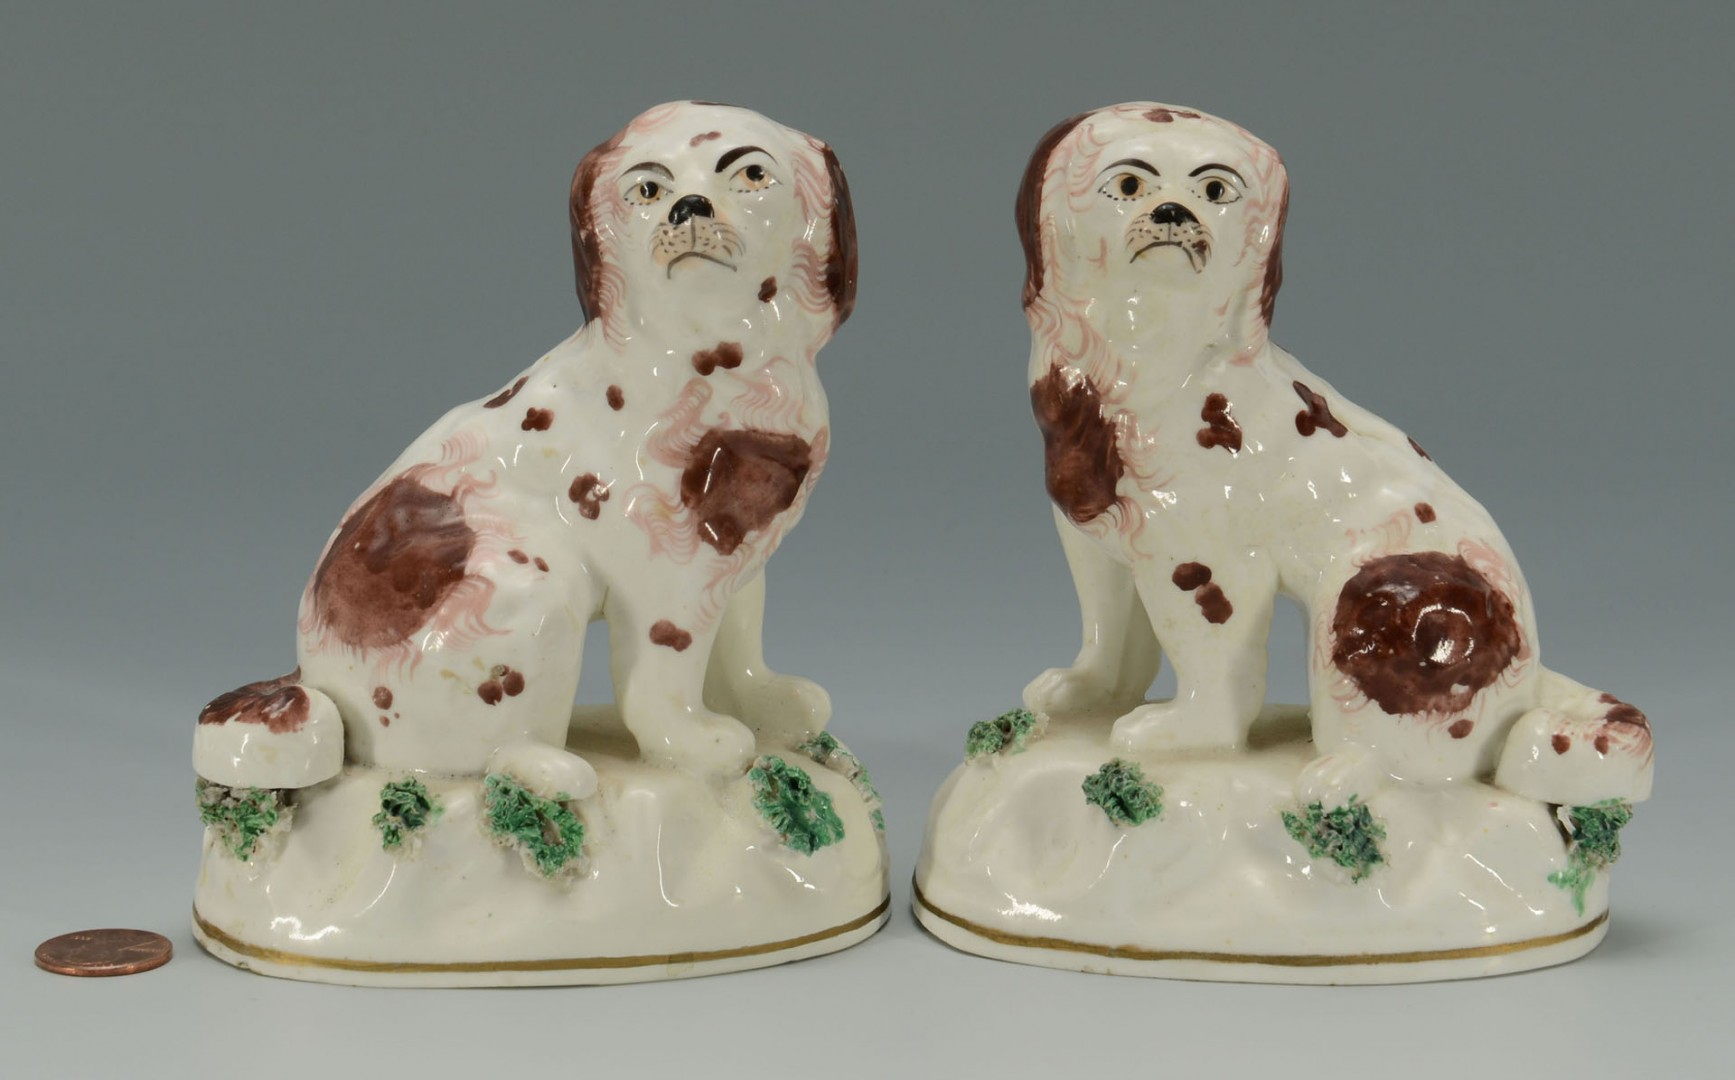 Lot 439: 2 Small Staffordshire King Charles Spaniel dog fig